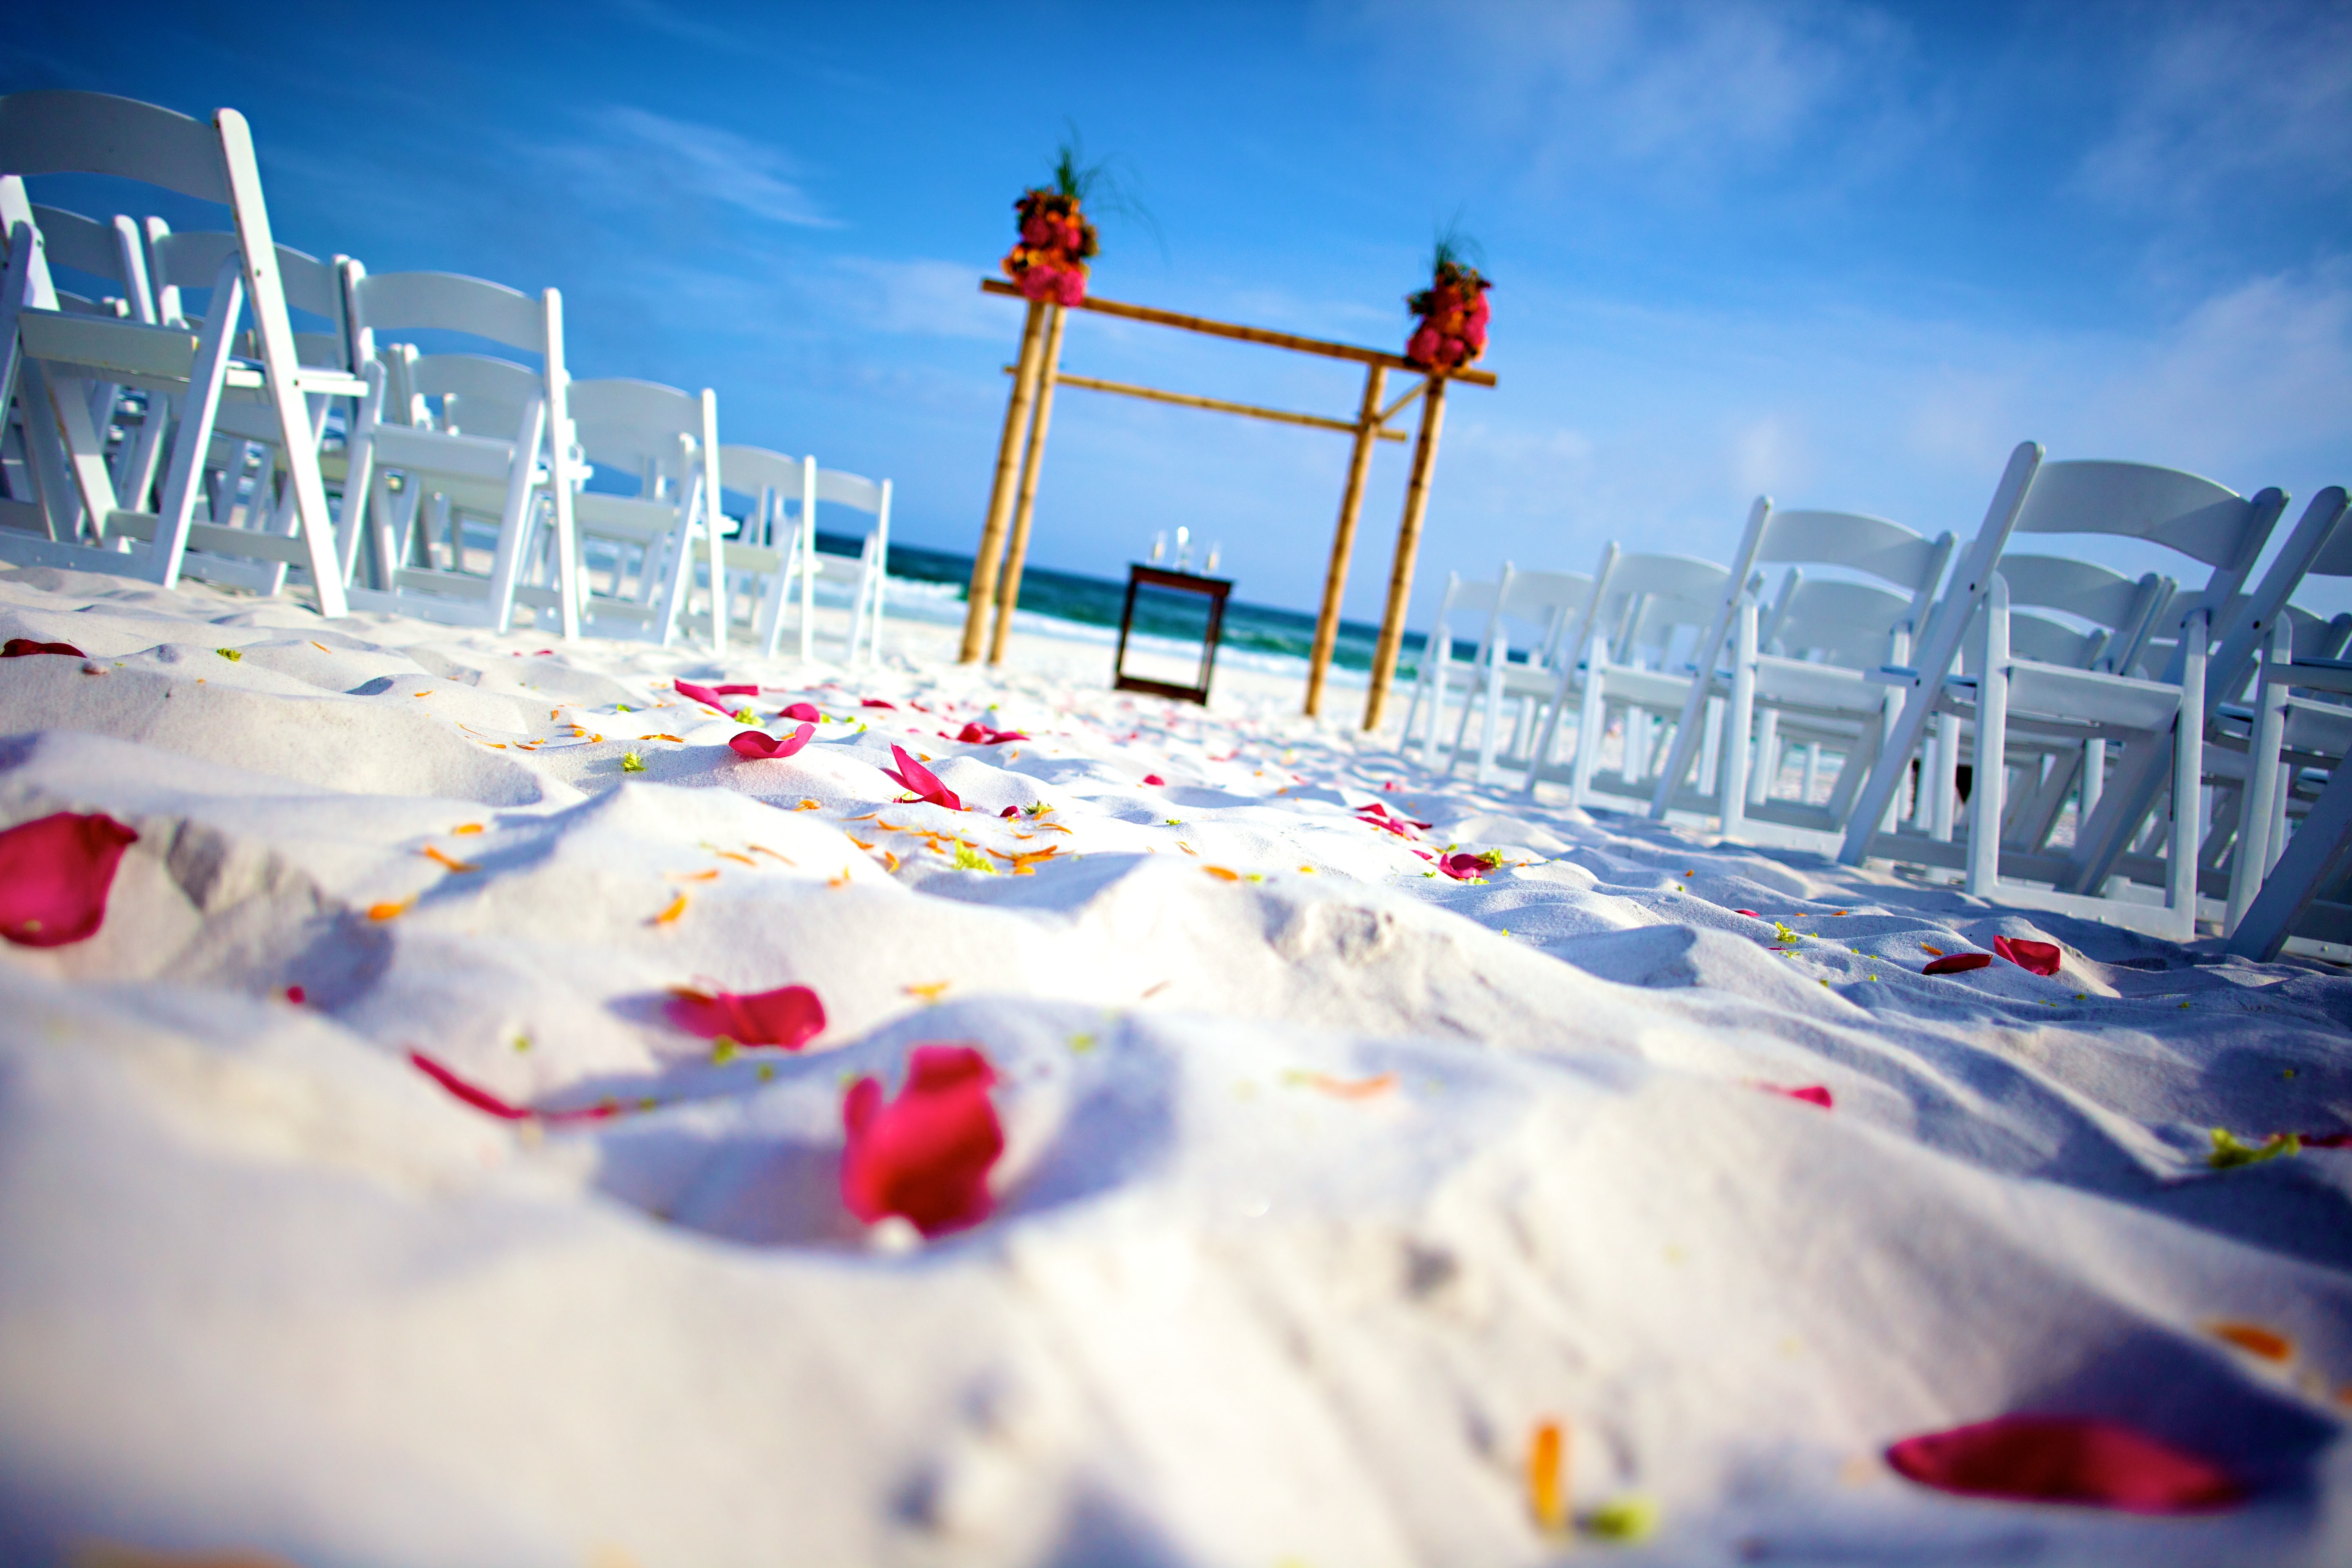 Sandestin Named The Best Of Weddings By The Knot For 2013 Resort Offers Destin Weddings With